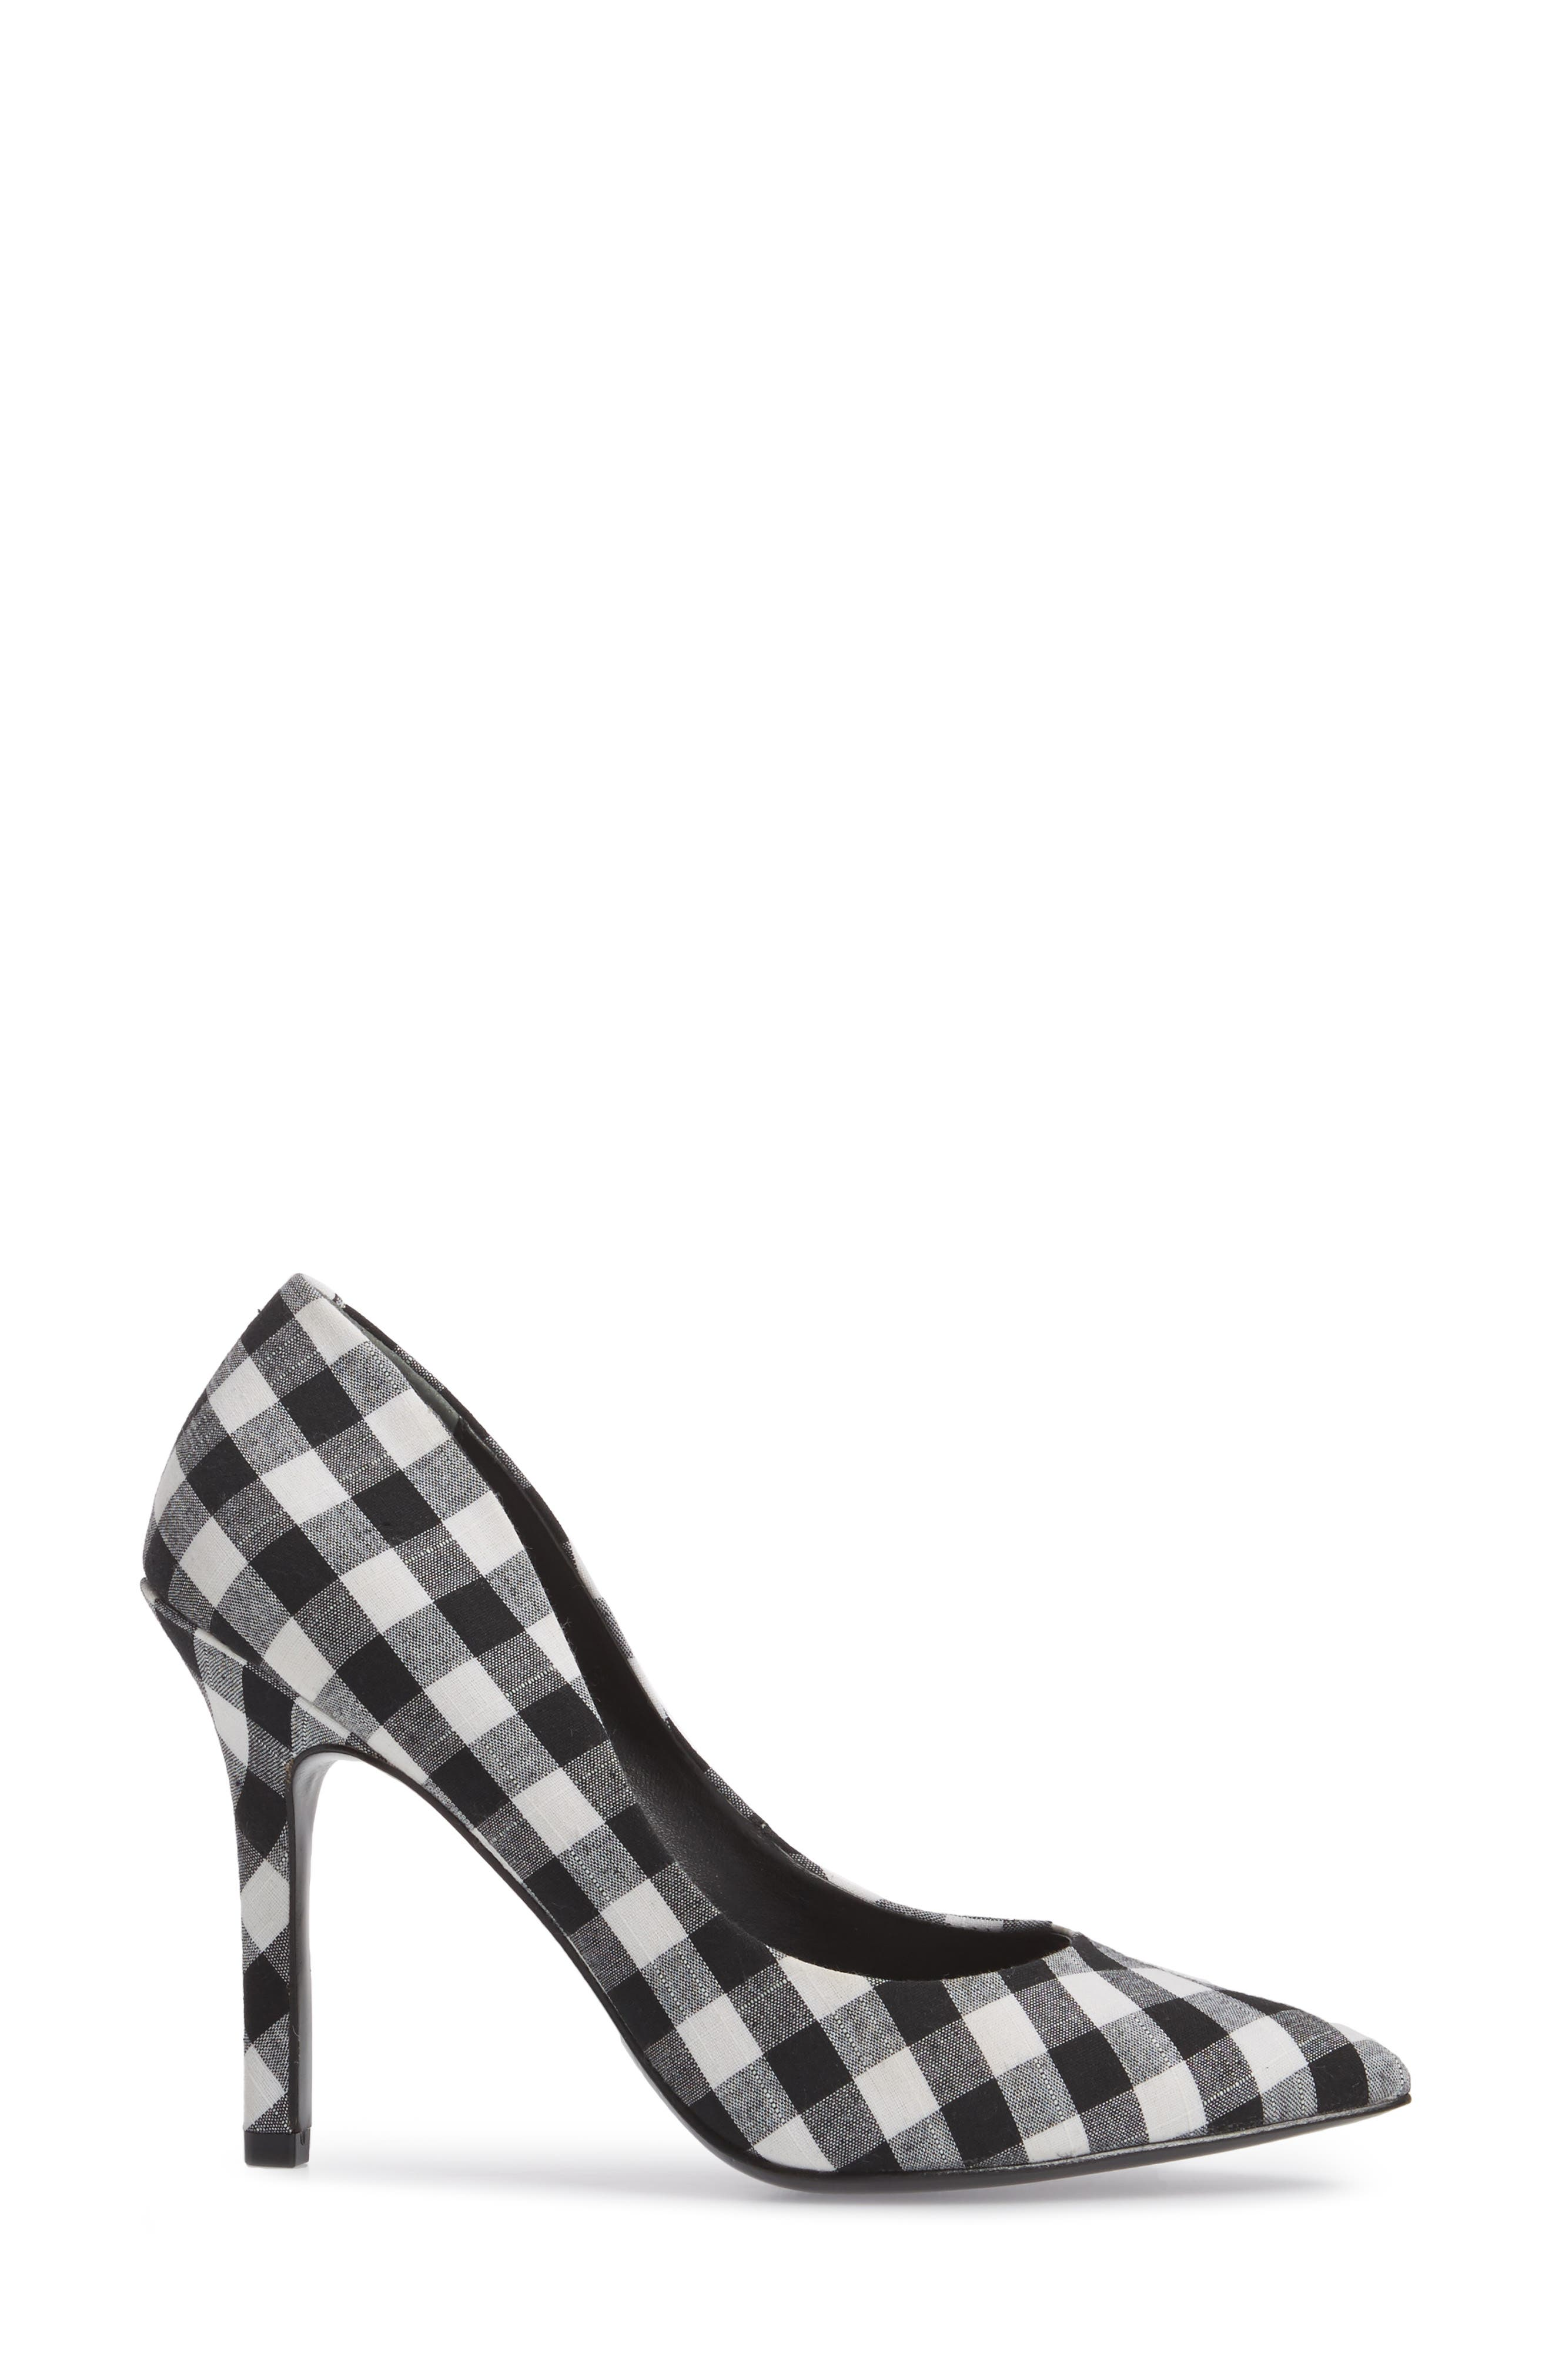 Maxx Pointy Toe Pump,                             Alternate thumbnail 3, color,                             BLACK/ WHITE GINGHAM FABRIC